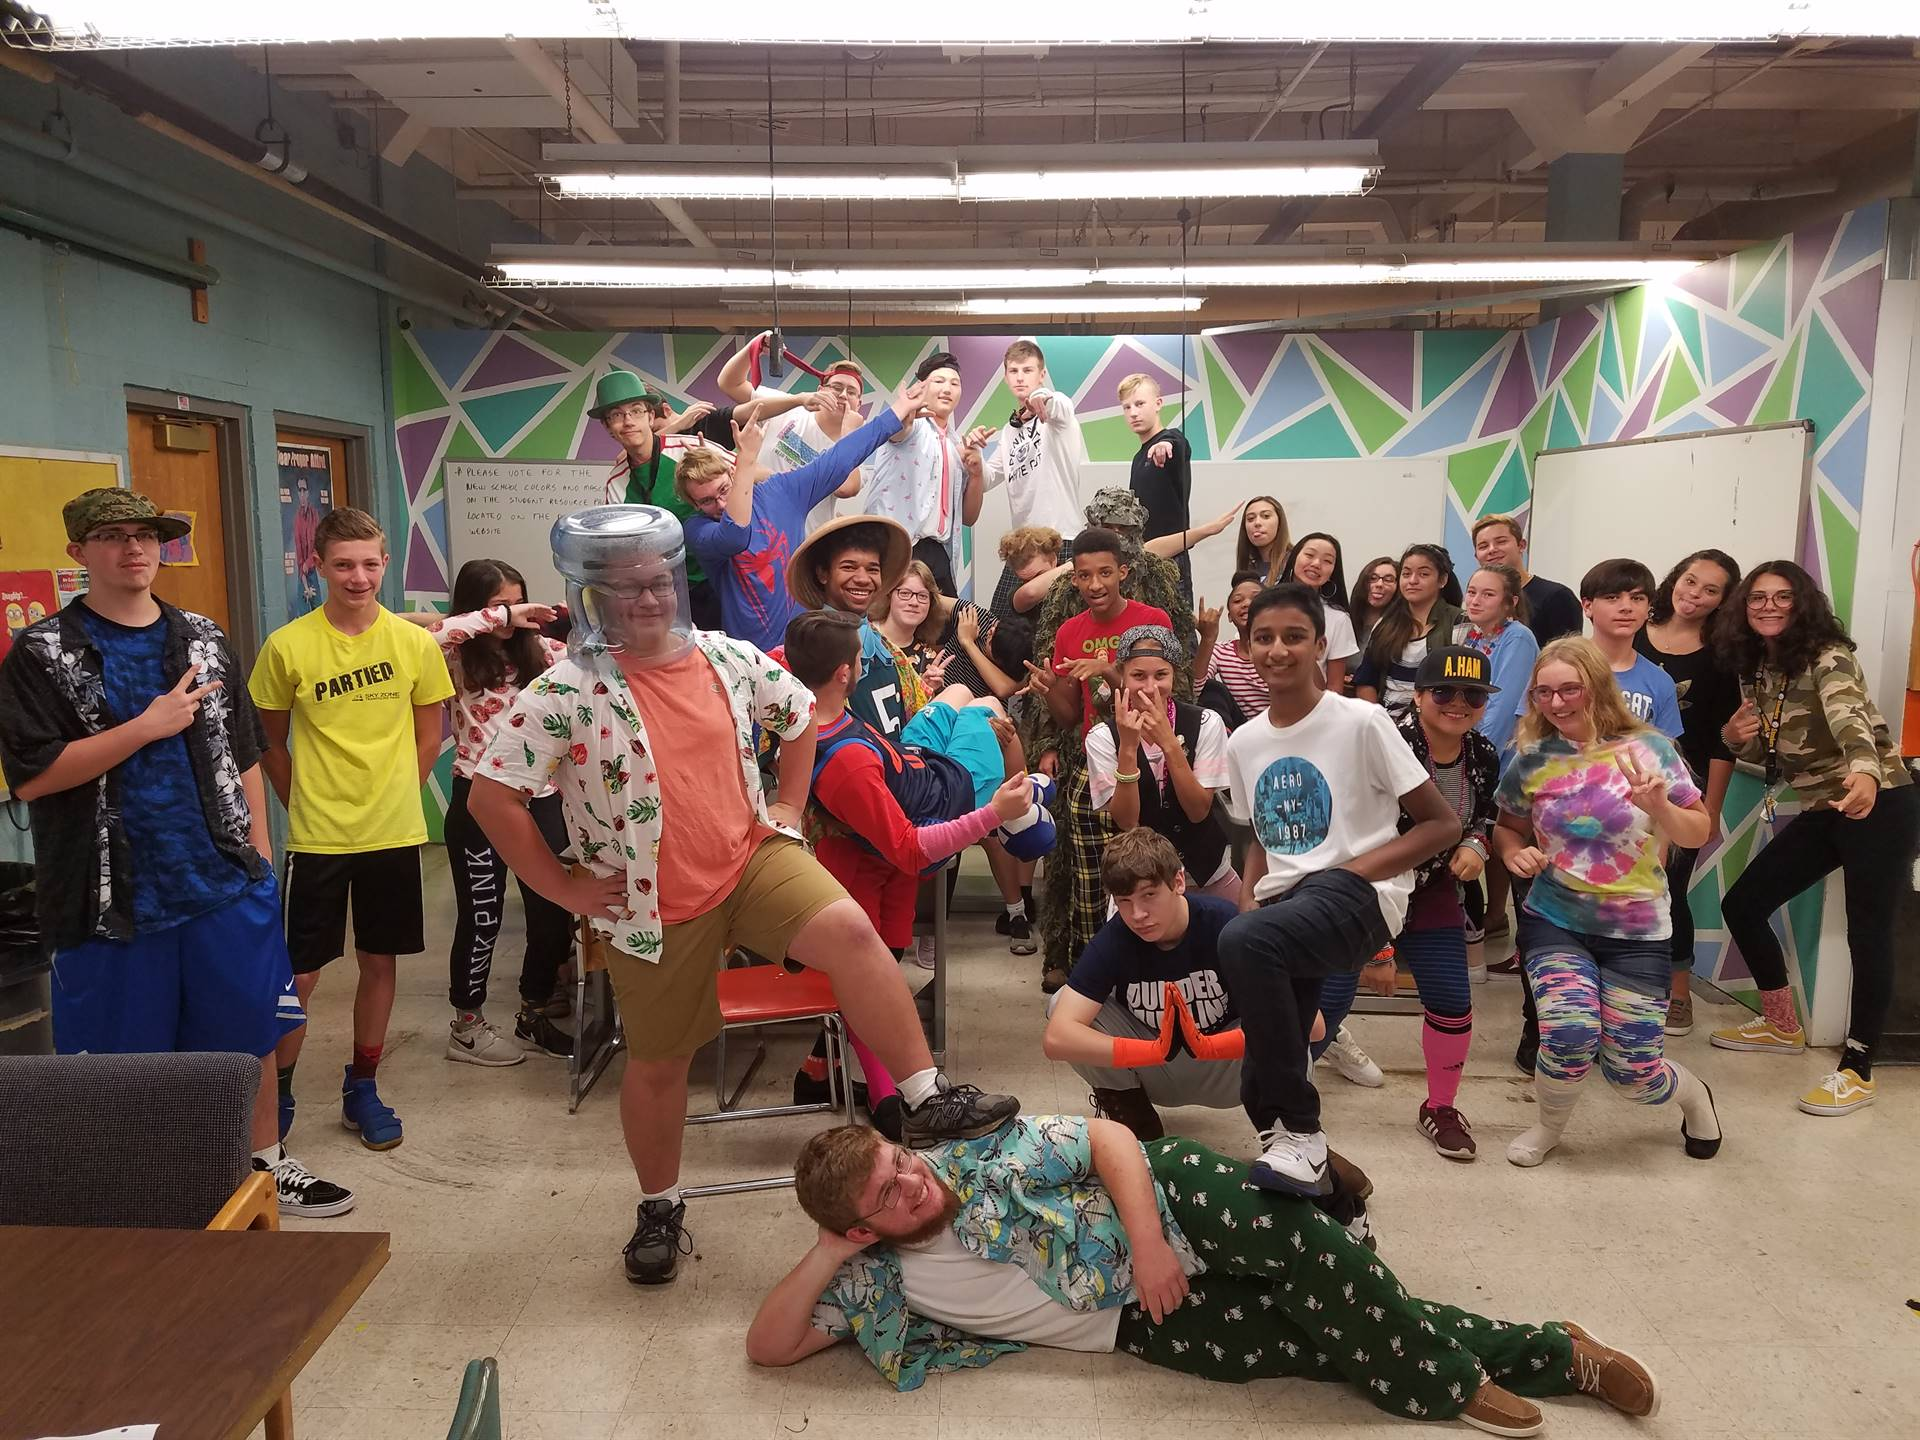 STEM students showing their school spirit on Wacky Wednesday